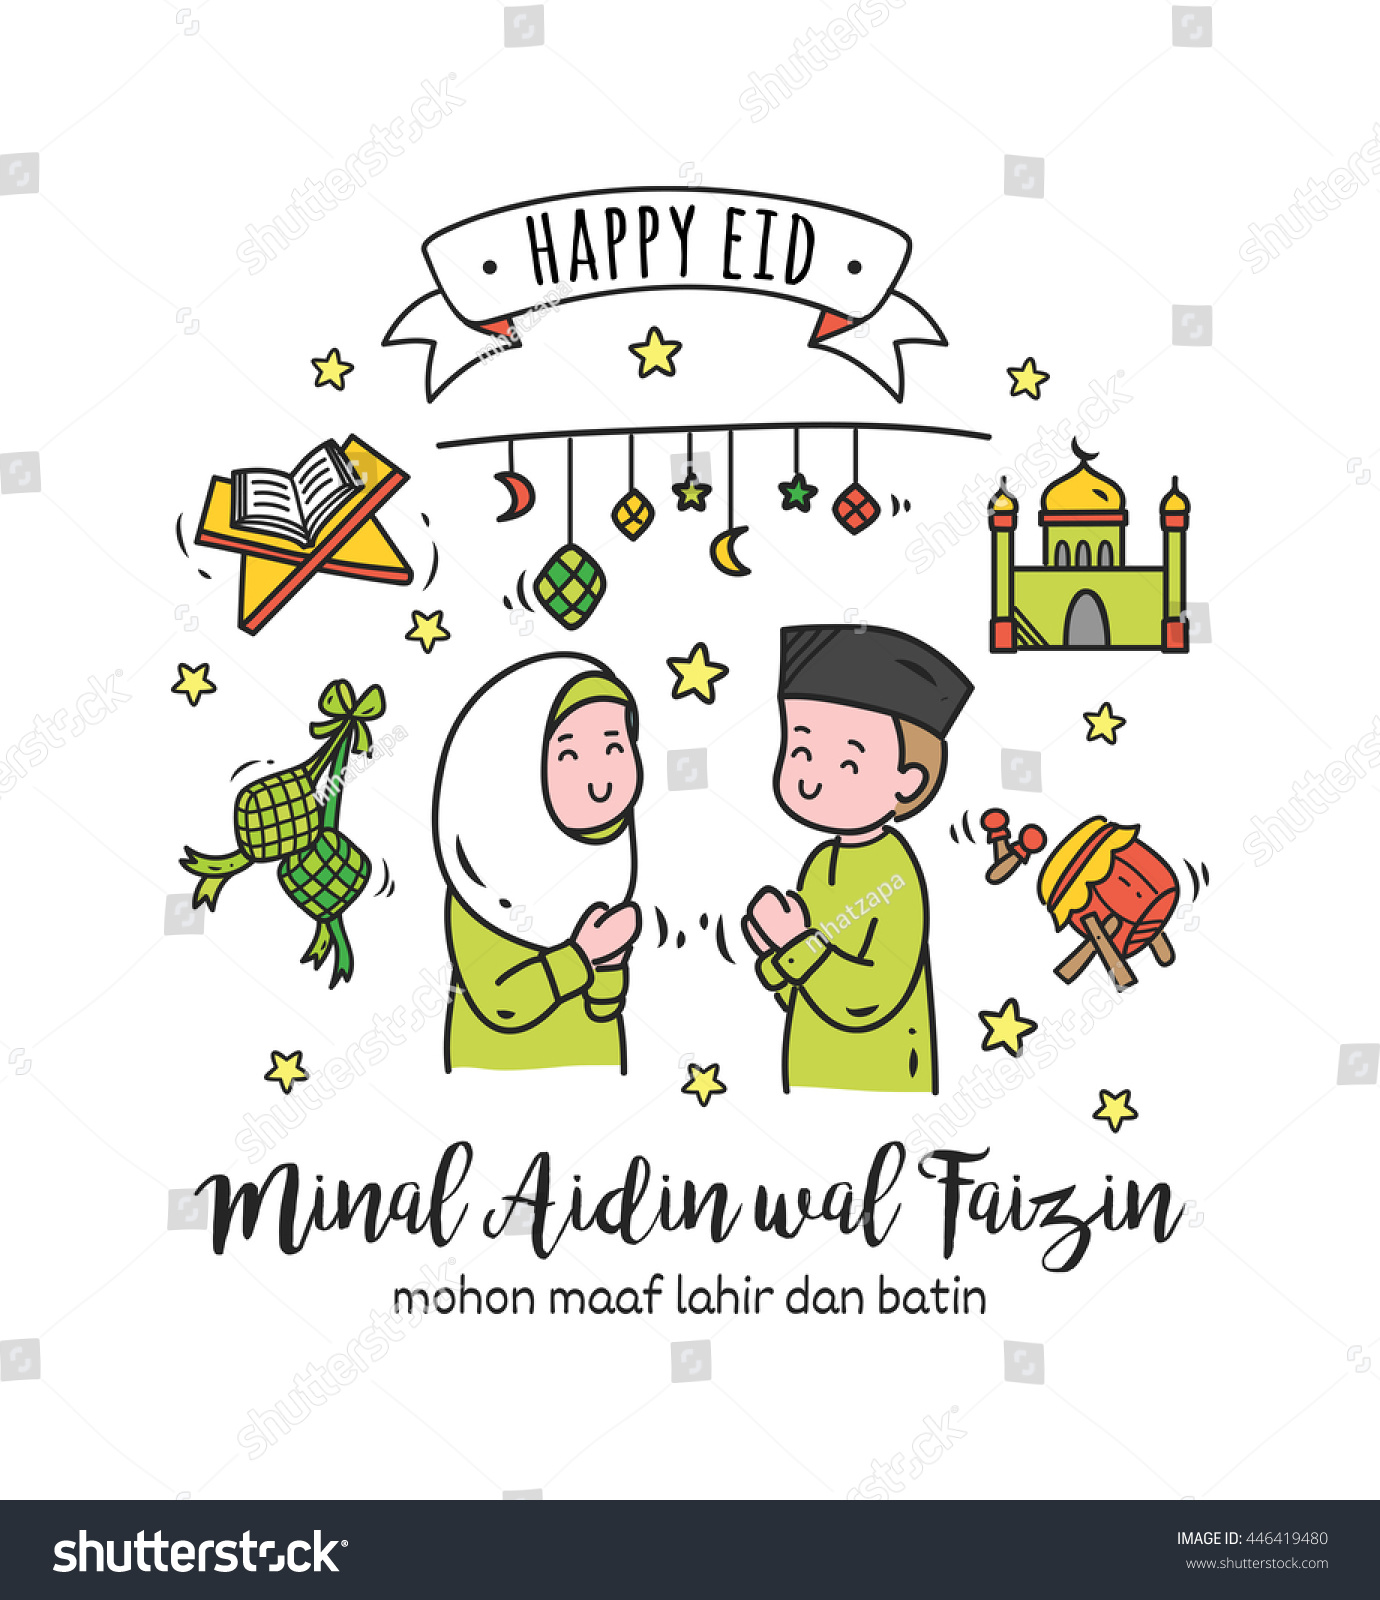 Indonesian idul fitri greeting card doodle stock vector royalty indonesian idul fitri greeting card in doodle stye with minal aidin wal faizin text m4hsunfo